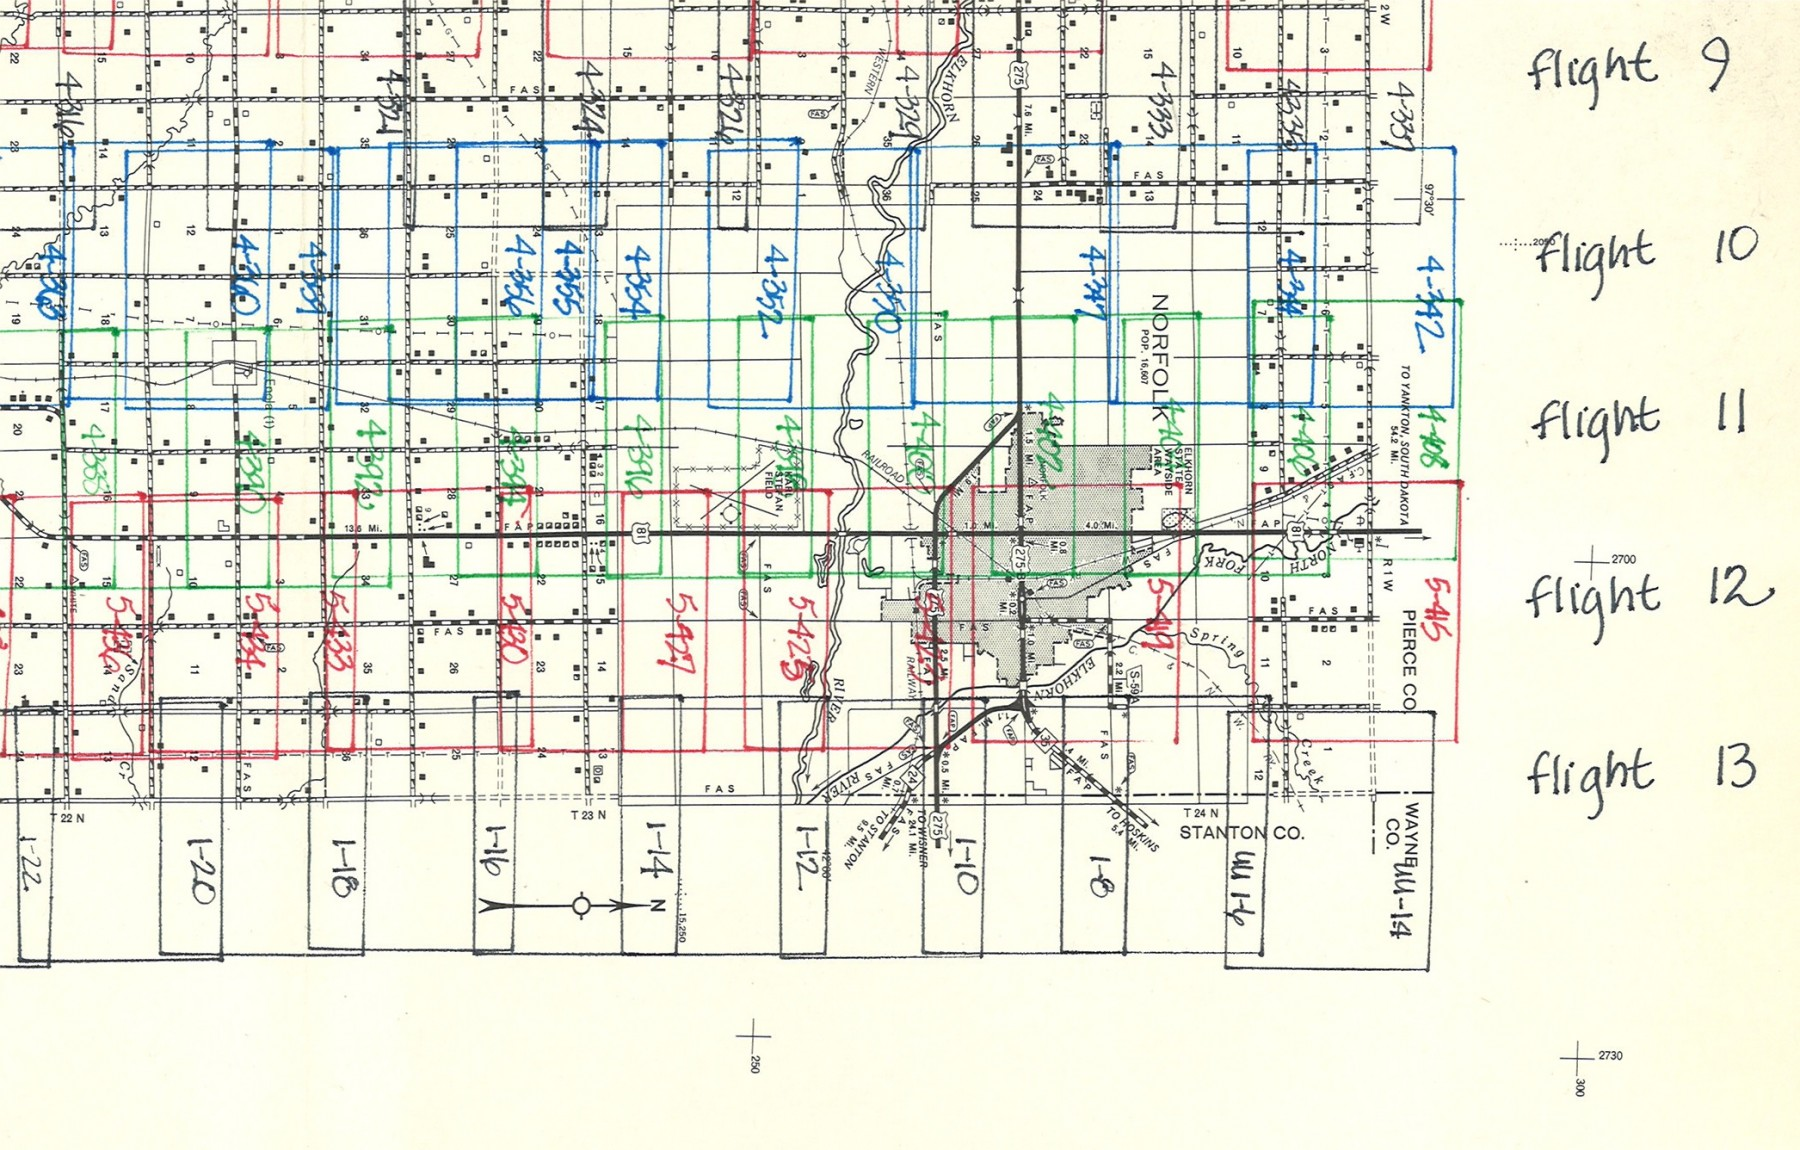 Nebraska aerial photography county index map.  (1M-1A)